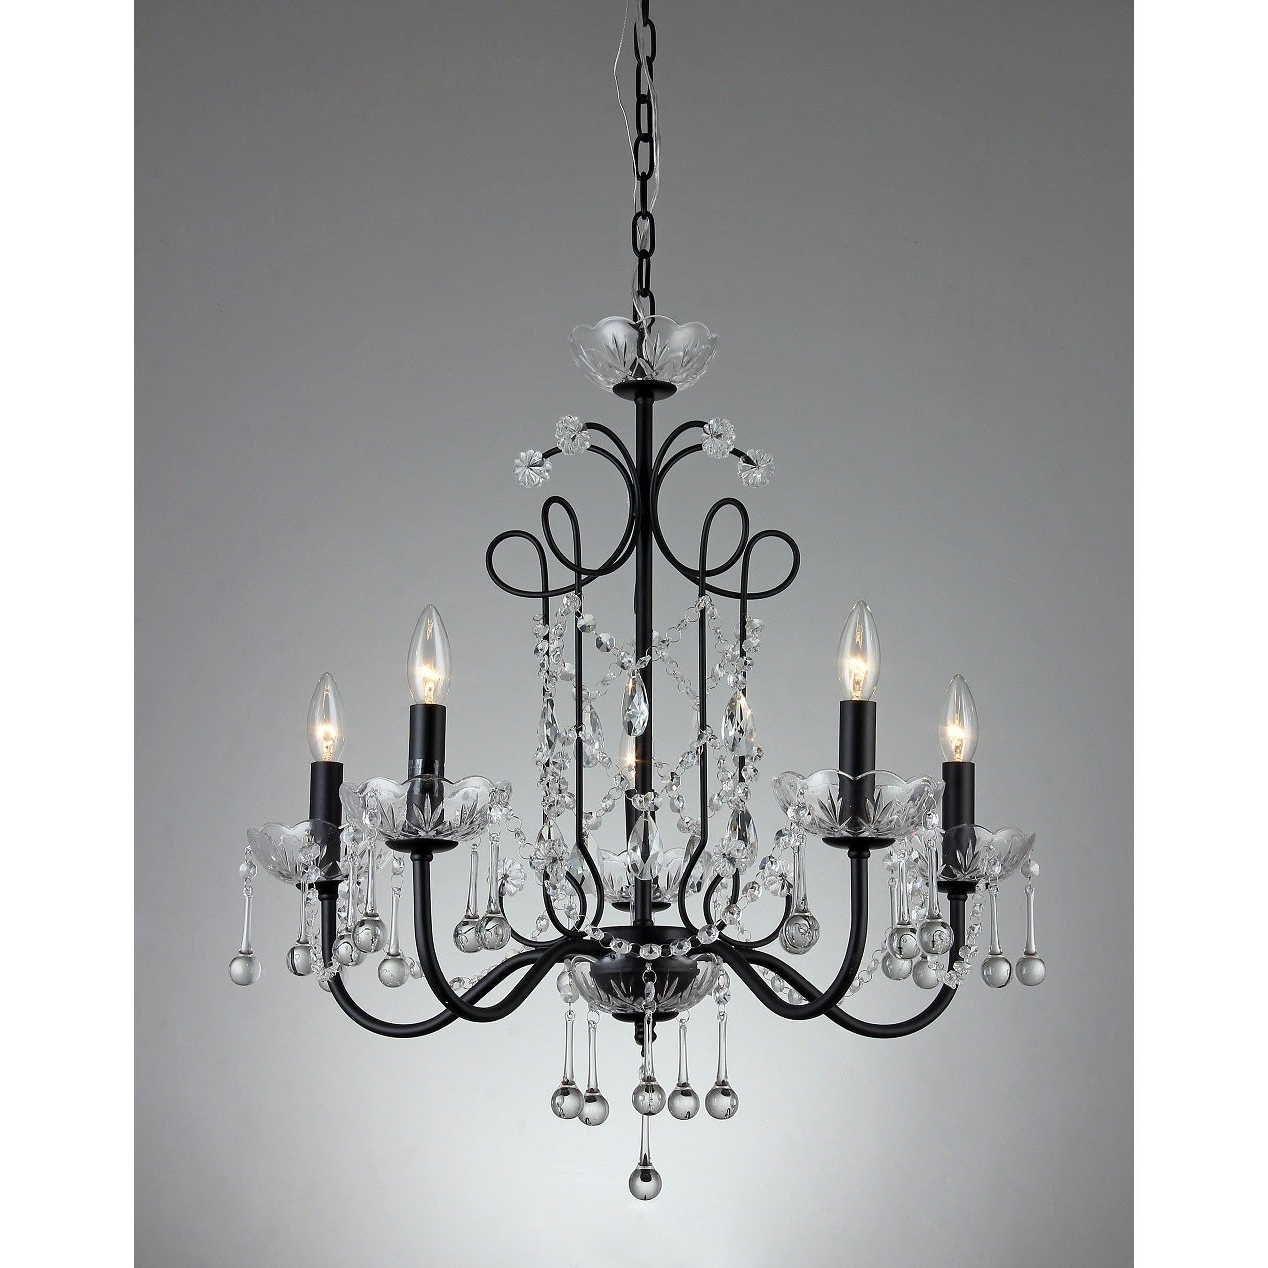 2019 Donna 5 Light Crystal 22 Inch Black Finish Chandelier With Donna 4 Light Globe Chandeliers (View 3 of 25)